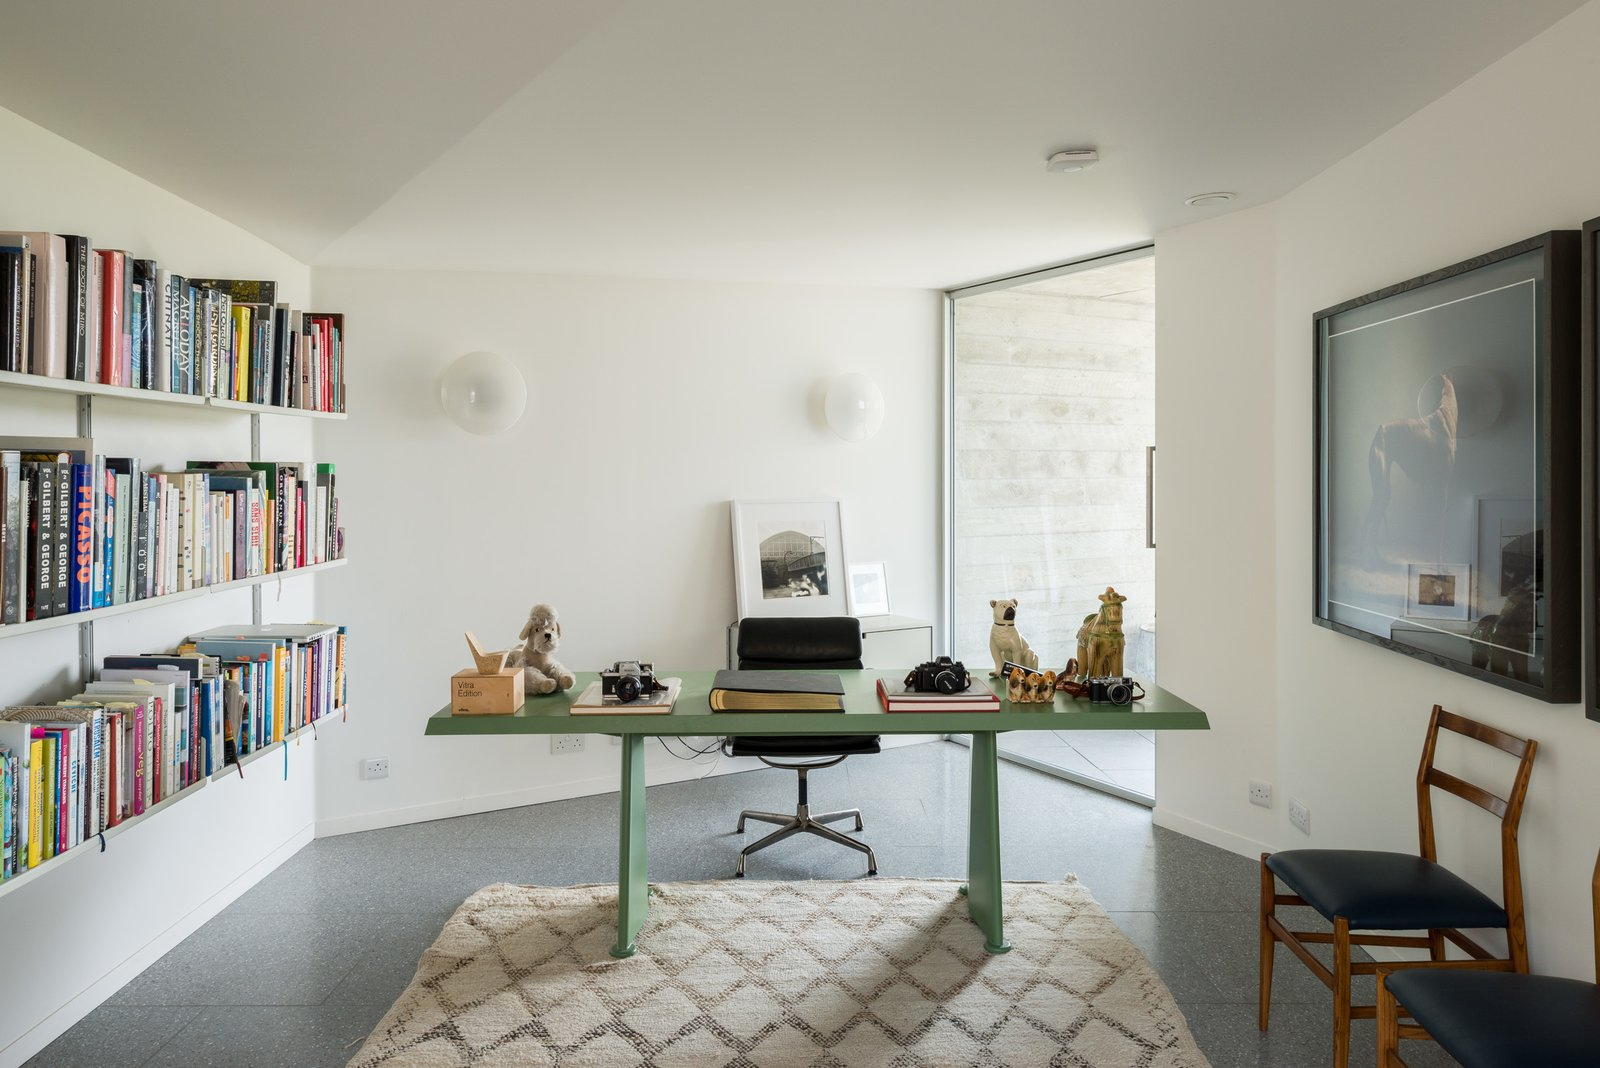 Tagged: Office, Shelves, Library, Chair, Study, Desk, and Terrazzo Floor. Explore a Prefabricated House For Sale in England That's Clad With Cor-Ten Steel - Photo 8 of 12